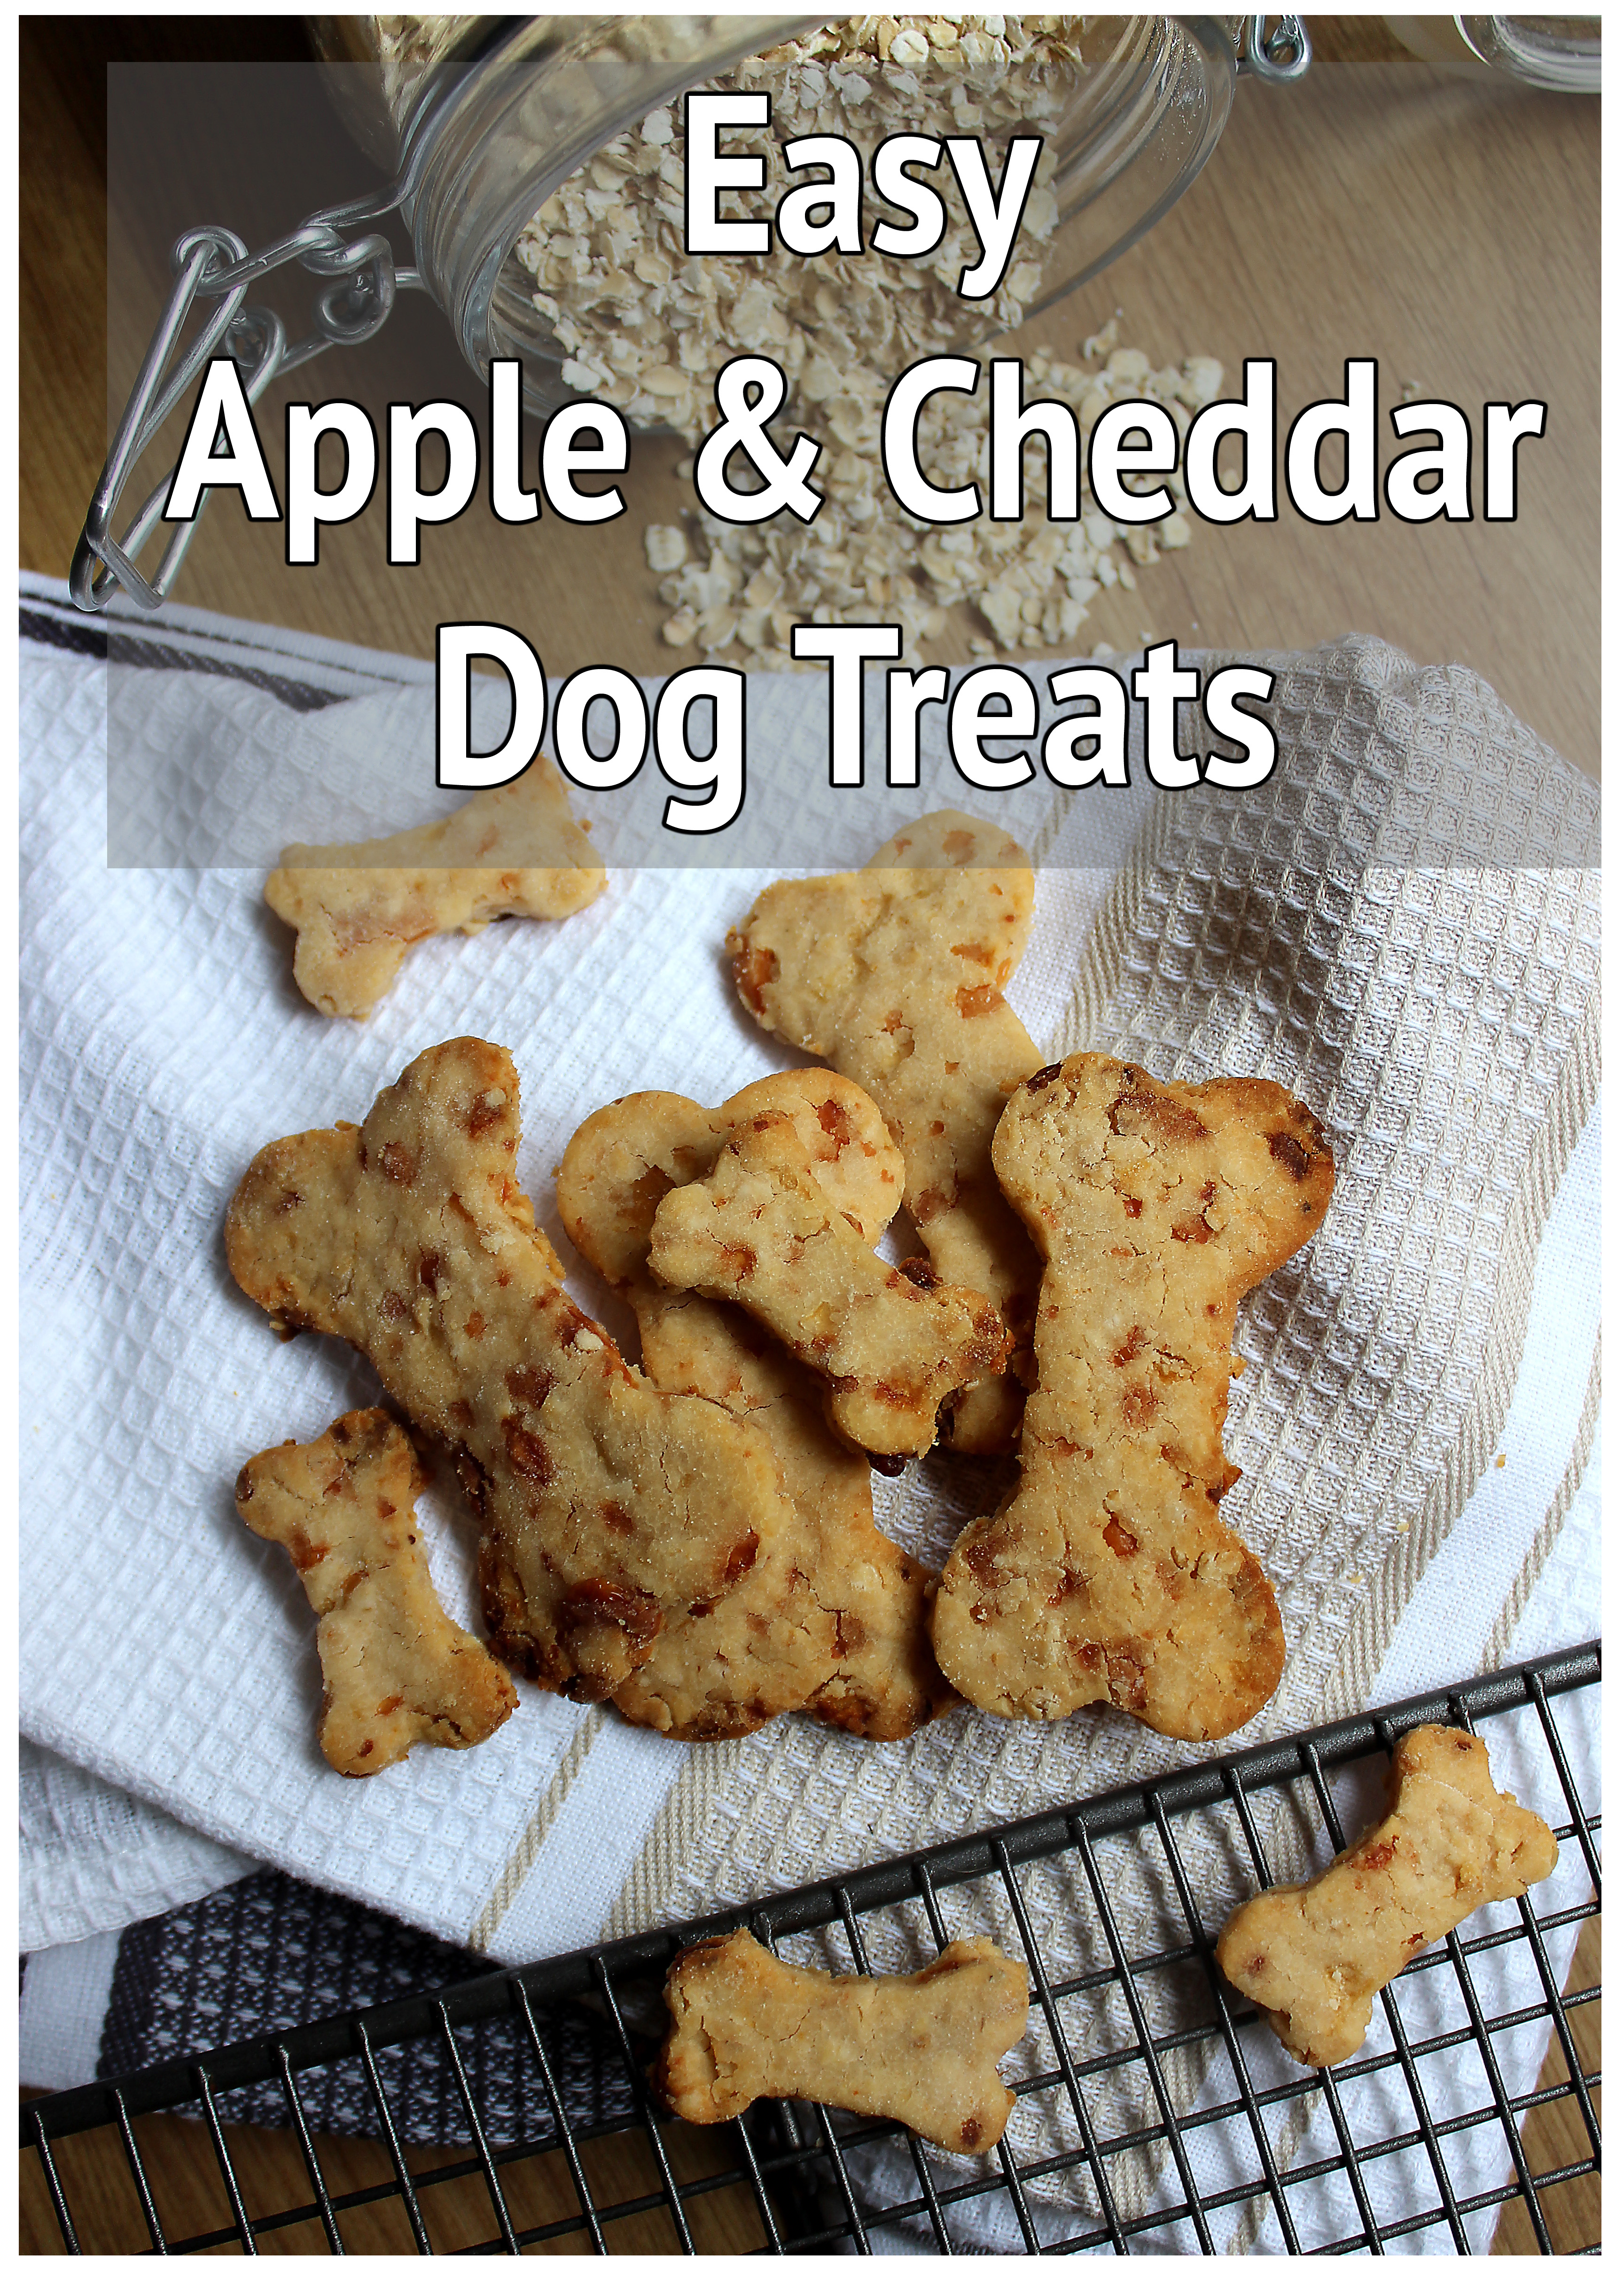 Meaty Cheese Corn Bones Recipe Low-sodium and low-fat ingredients keep this DIY dog treat recipe a perfect fit for your pup. The bone shape makes them extra fun, .